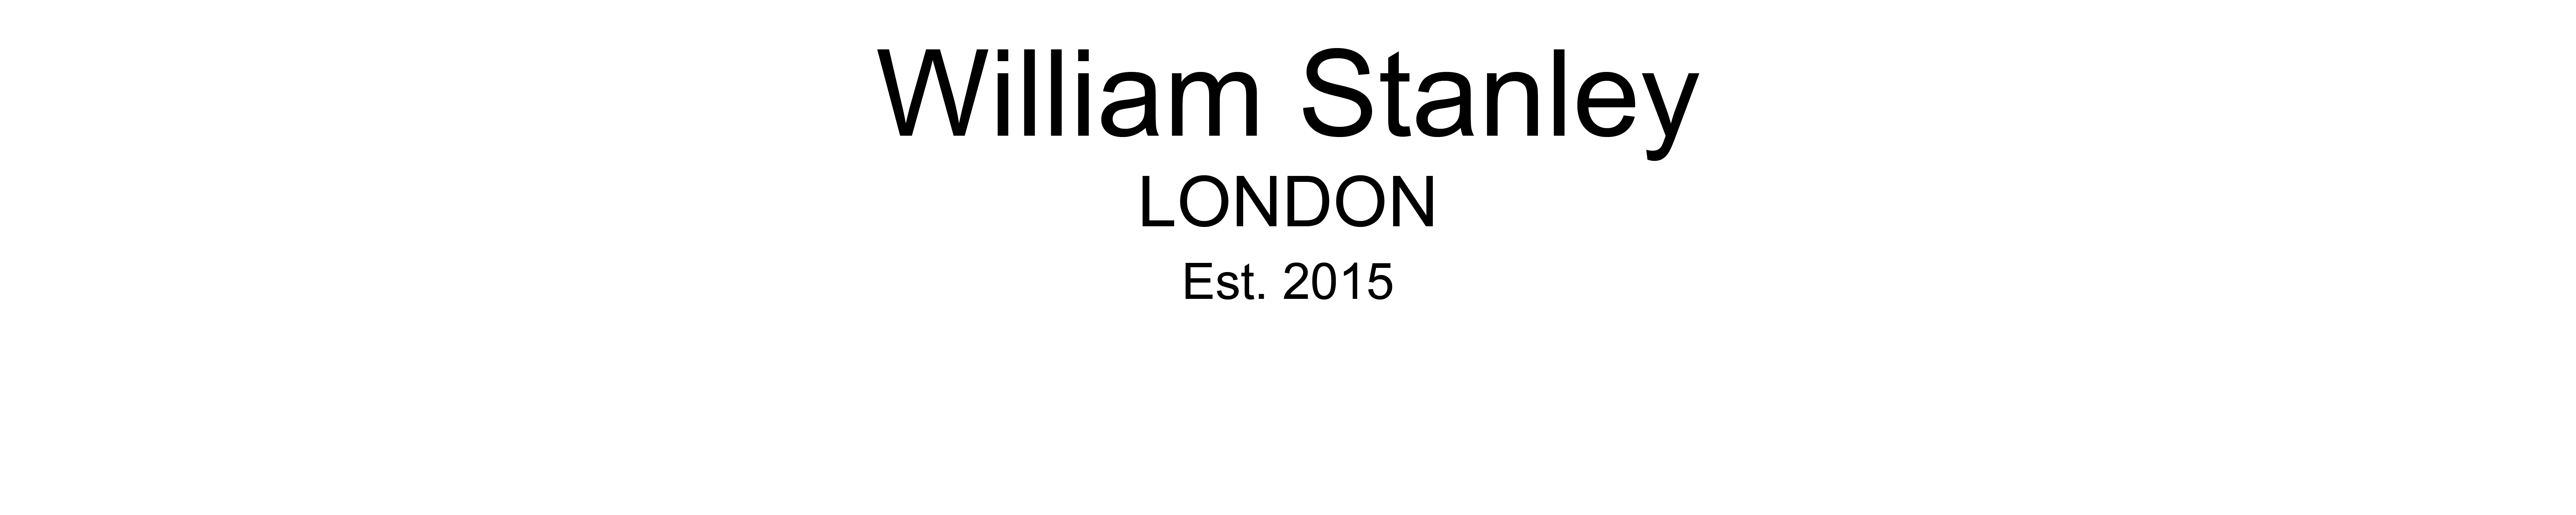 William Stanley